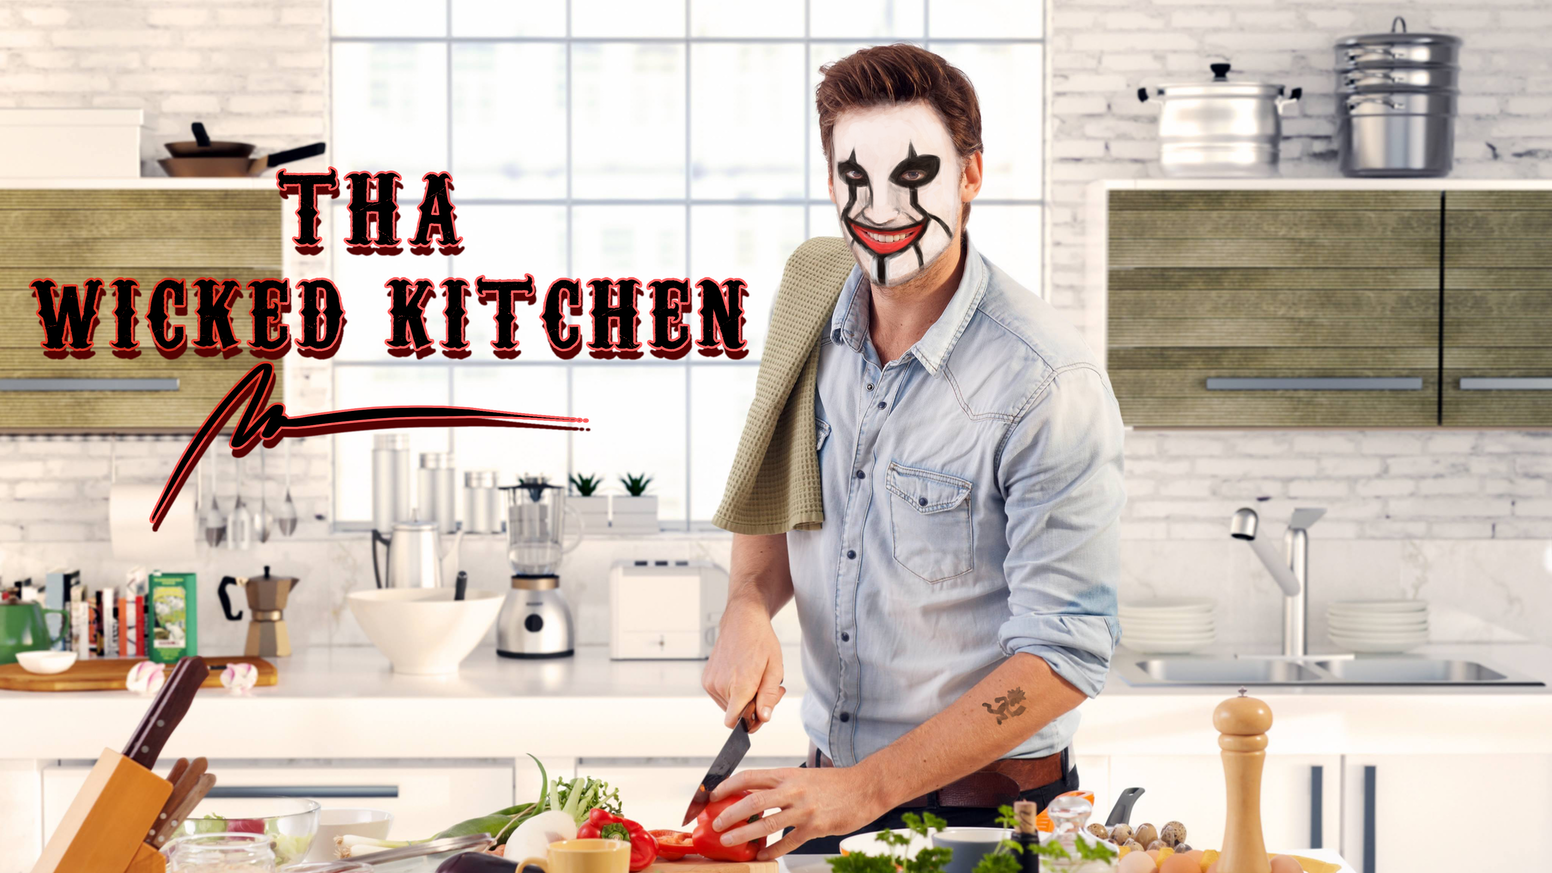 Tha Wicked Kitchen - The First Juggalo Cookbook by Brad